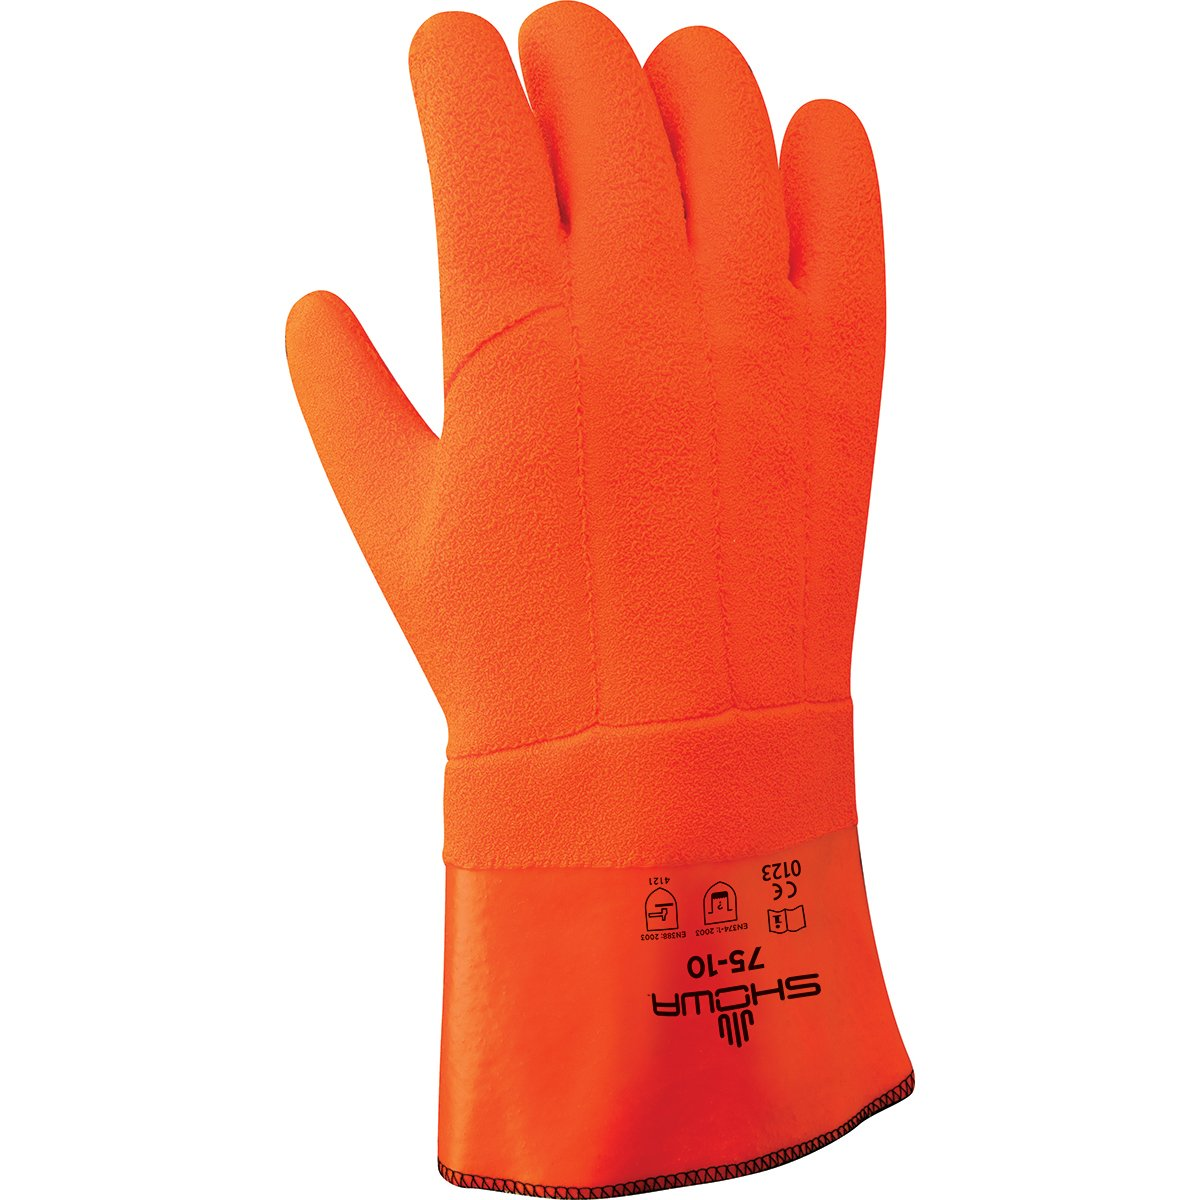 SHOWA 75 Insulated PVC Coated Glove, Foam Insulation, Chemical Resistant, 12'' Gauntlet, Large (Pack of 12 Pairs)